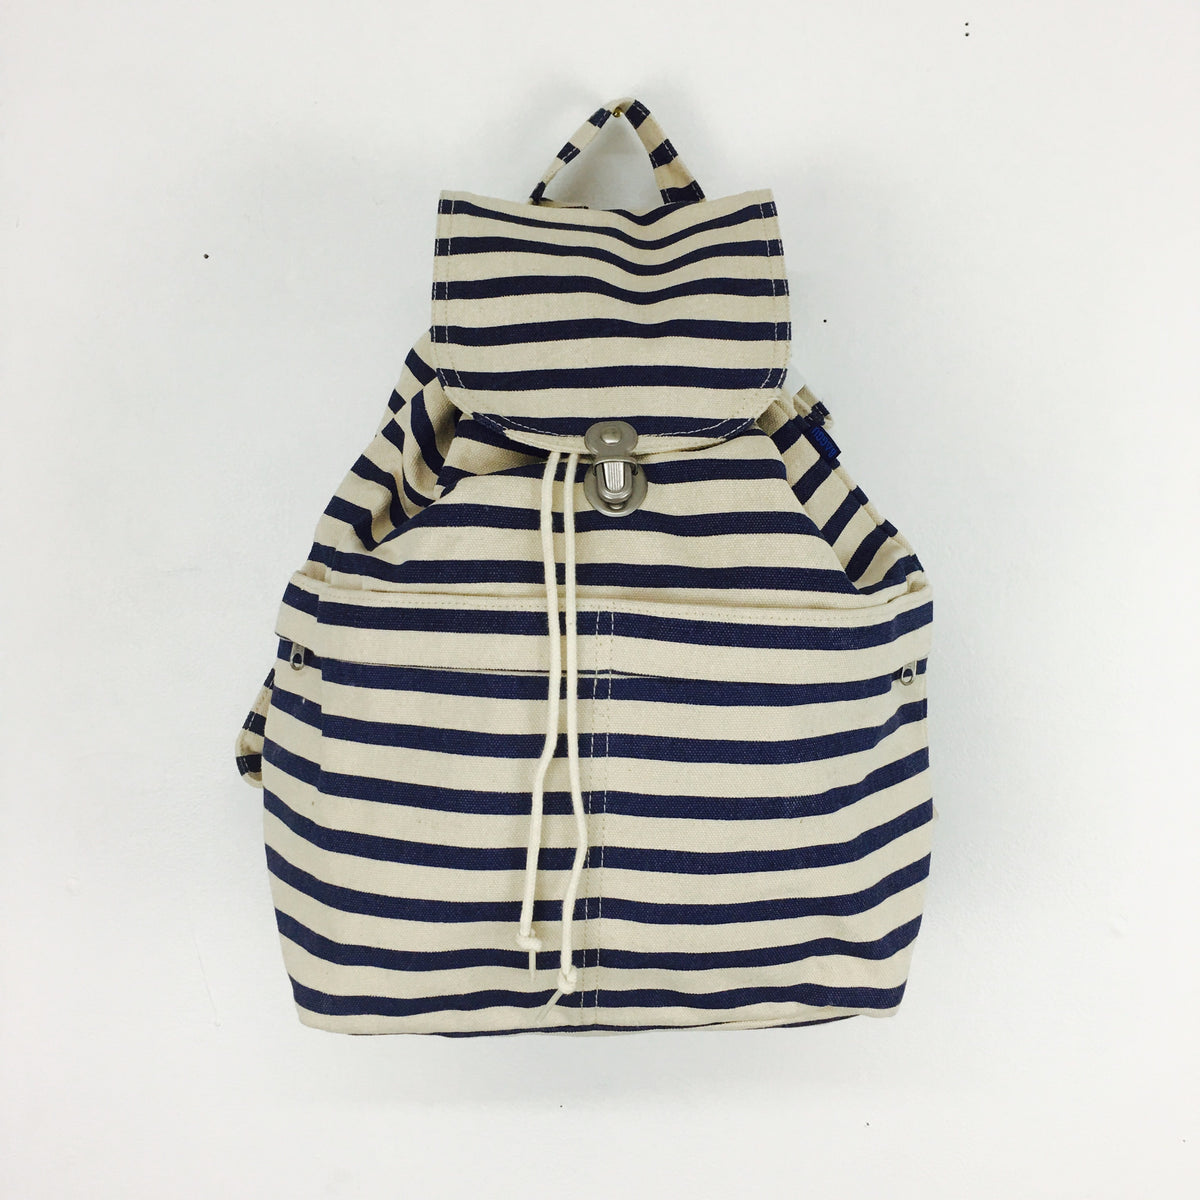 Baggu Canvas Backpack - Old Style Sailor Stripe